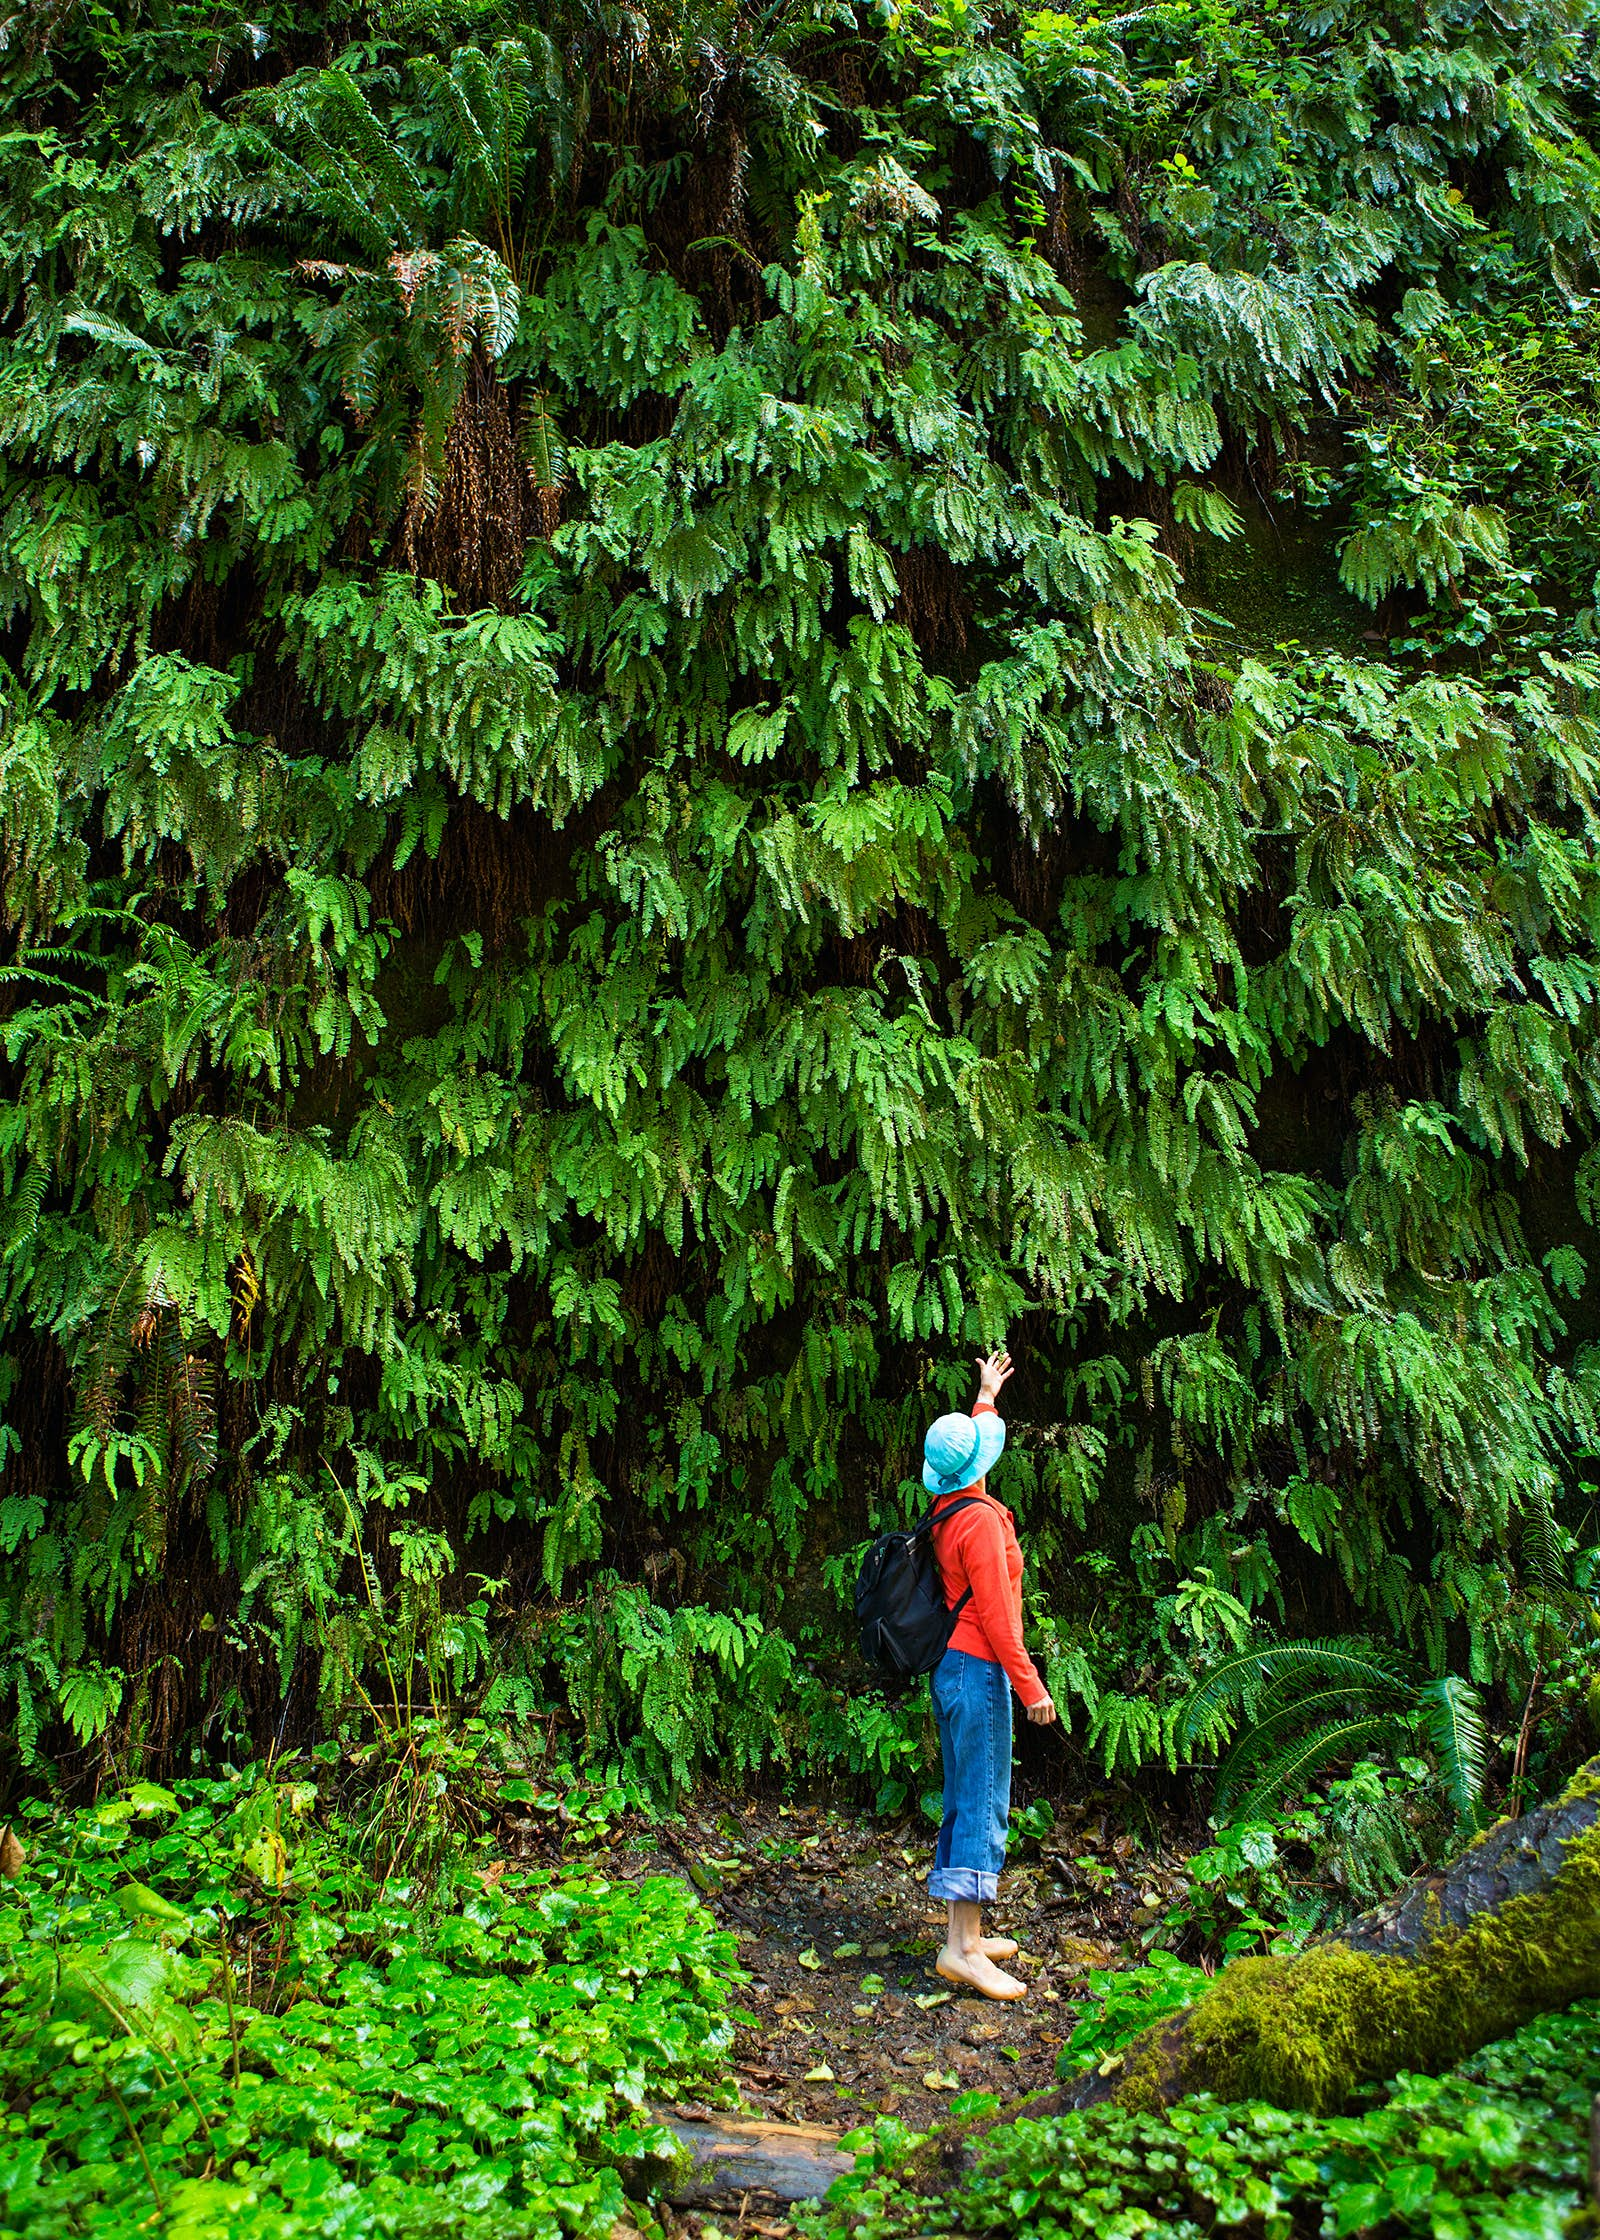 A hiker in Fern Canyon reaches up to touch some evergreens